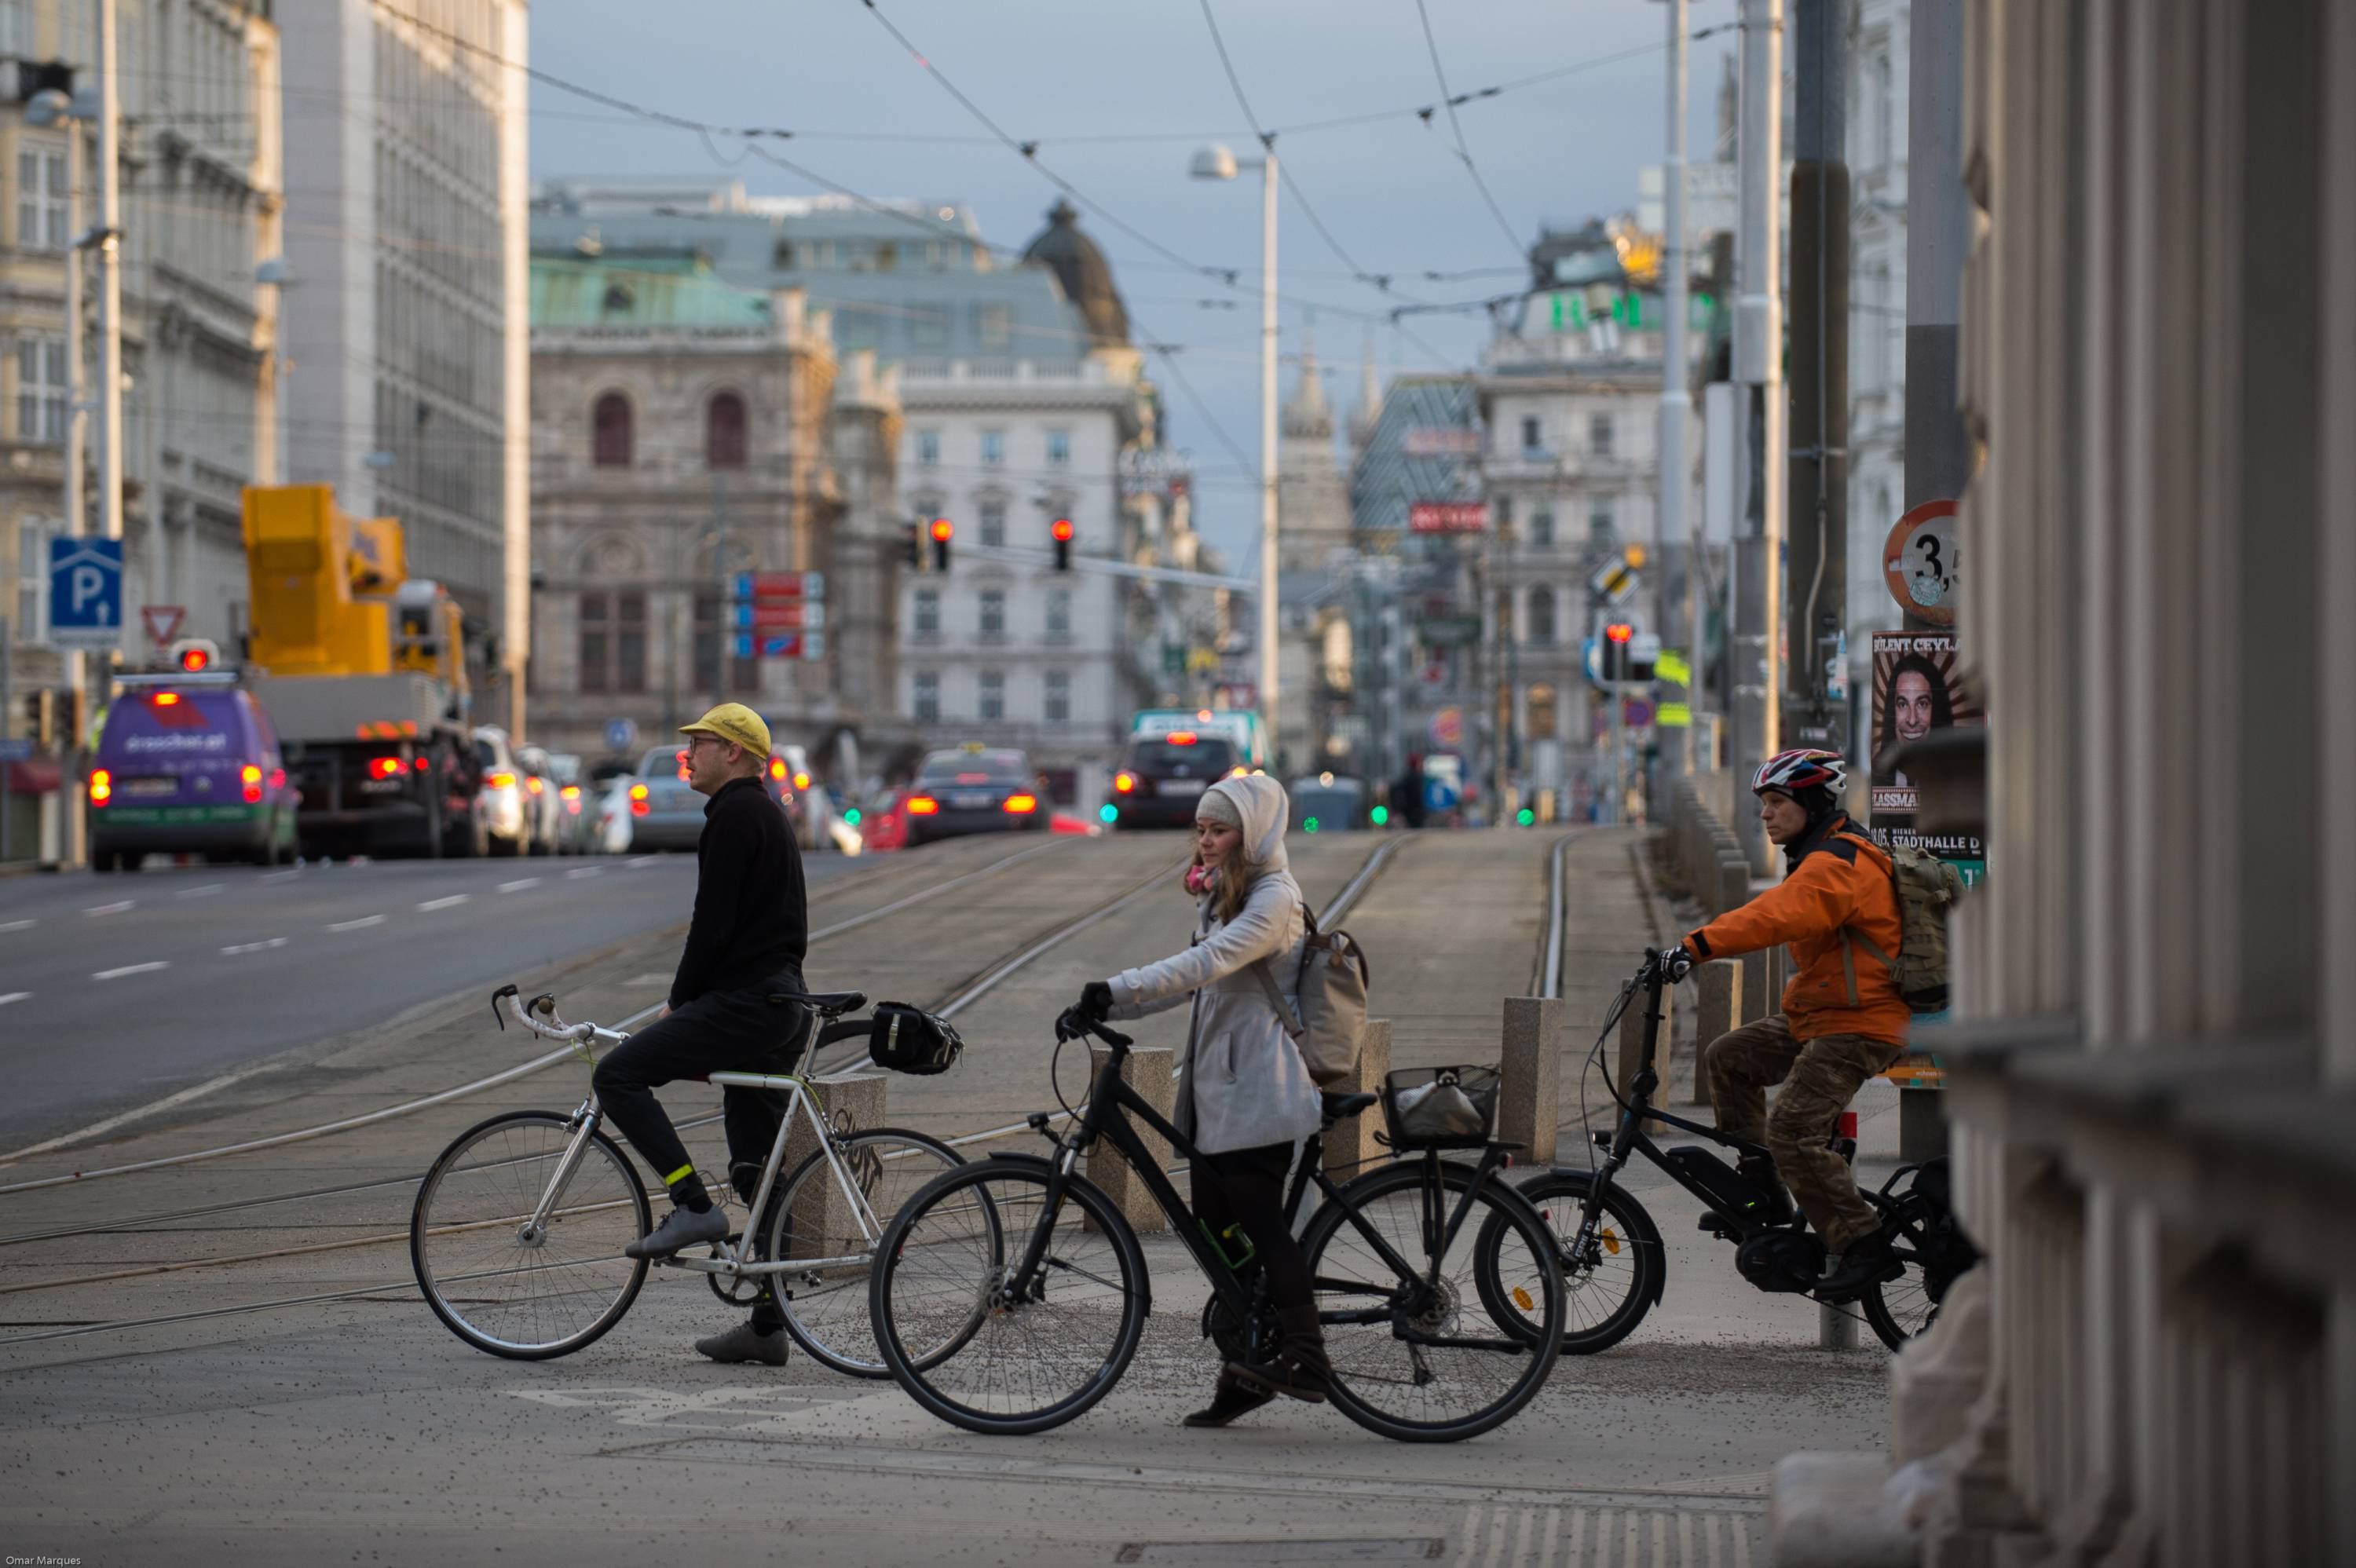 People seen on bicycles as they wait to cross the road in